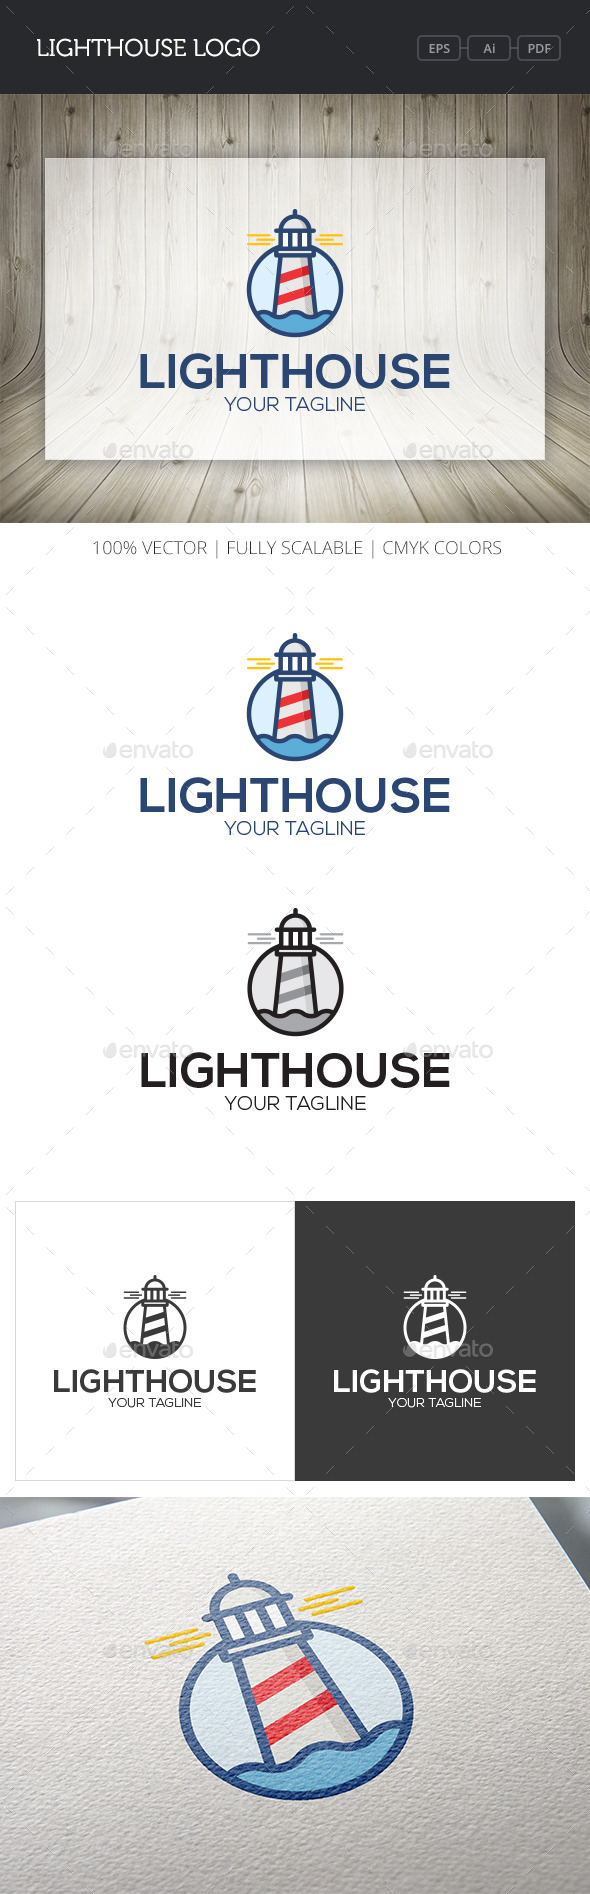 GraphicRiver Lighthouse Logo 10747147